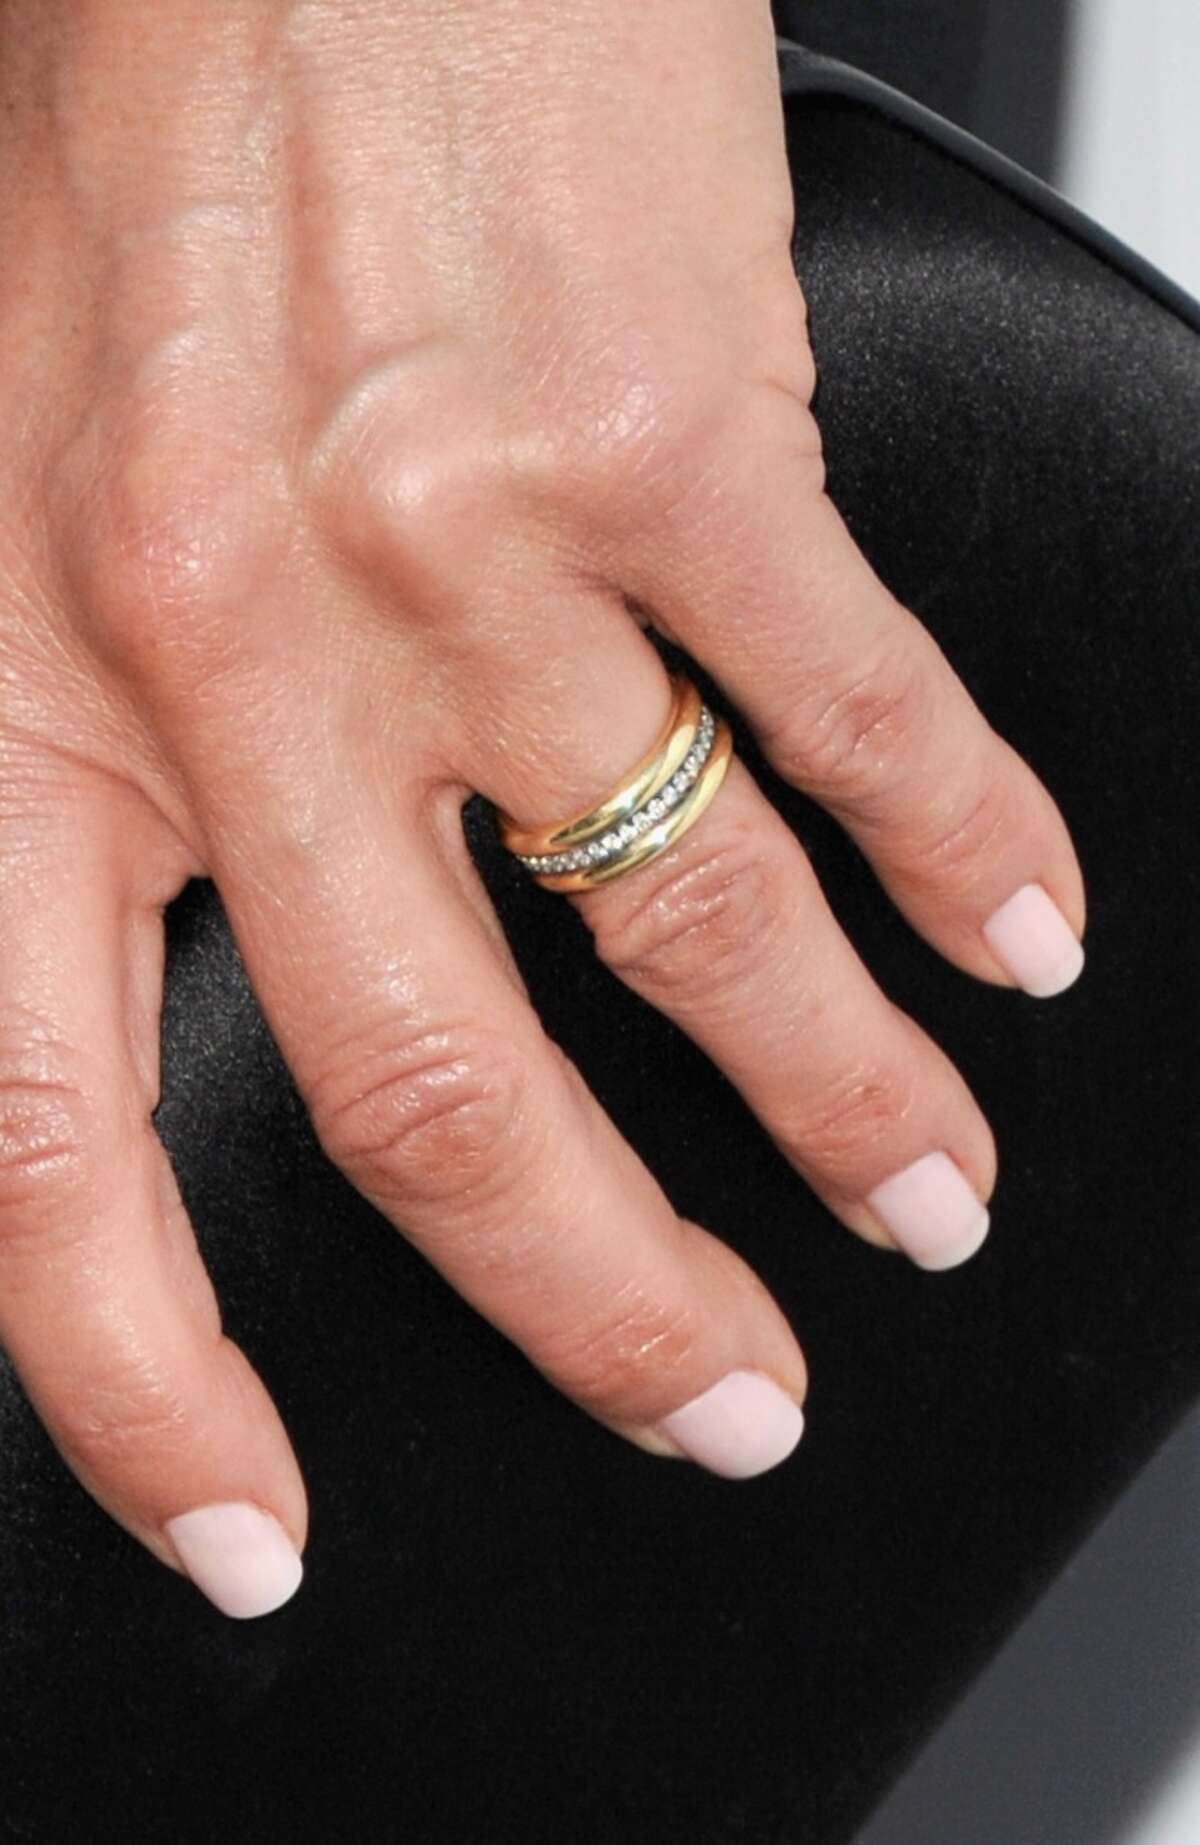 A close-up shot of Aniston's wedding band.